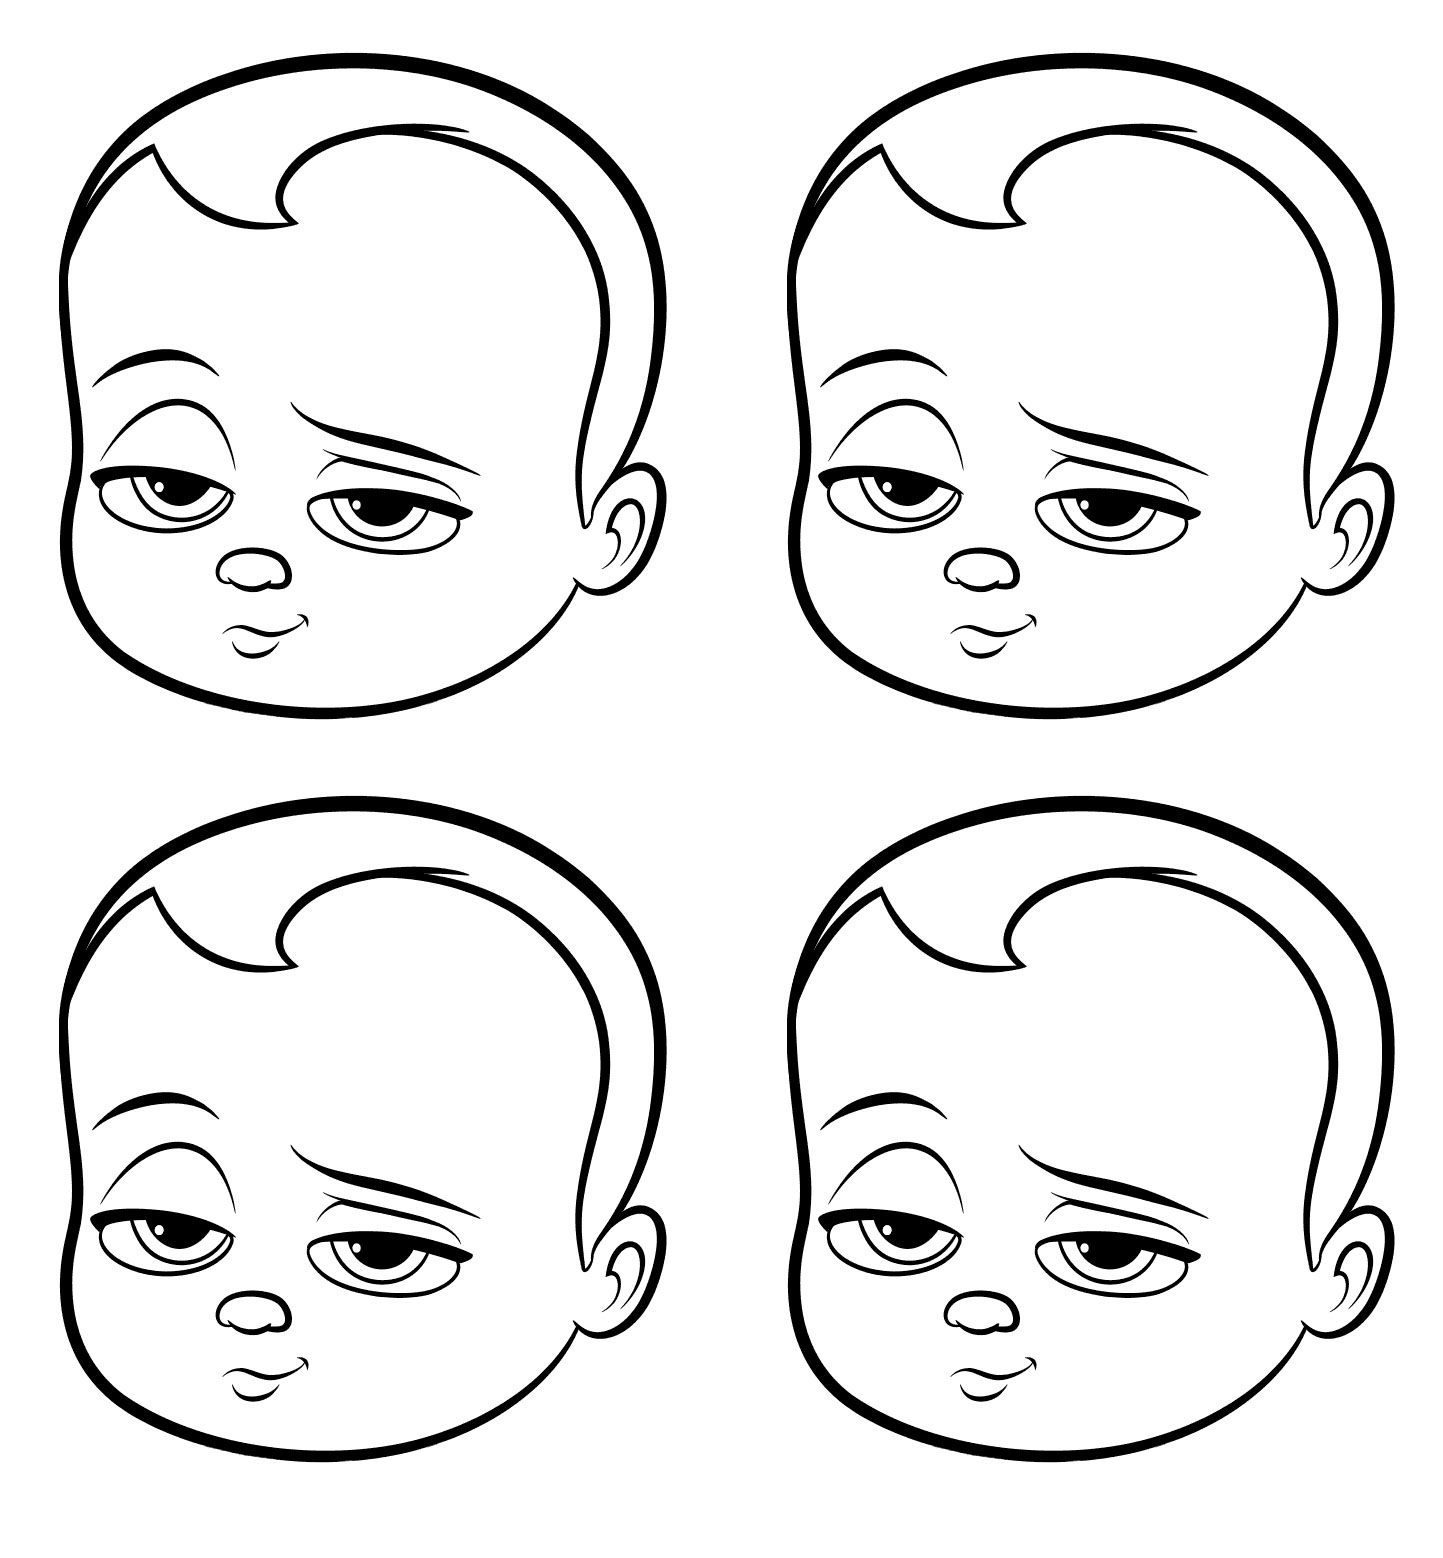 Baby Boss coloring page with few details for kids